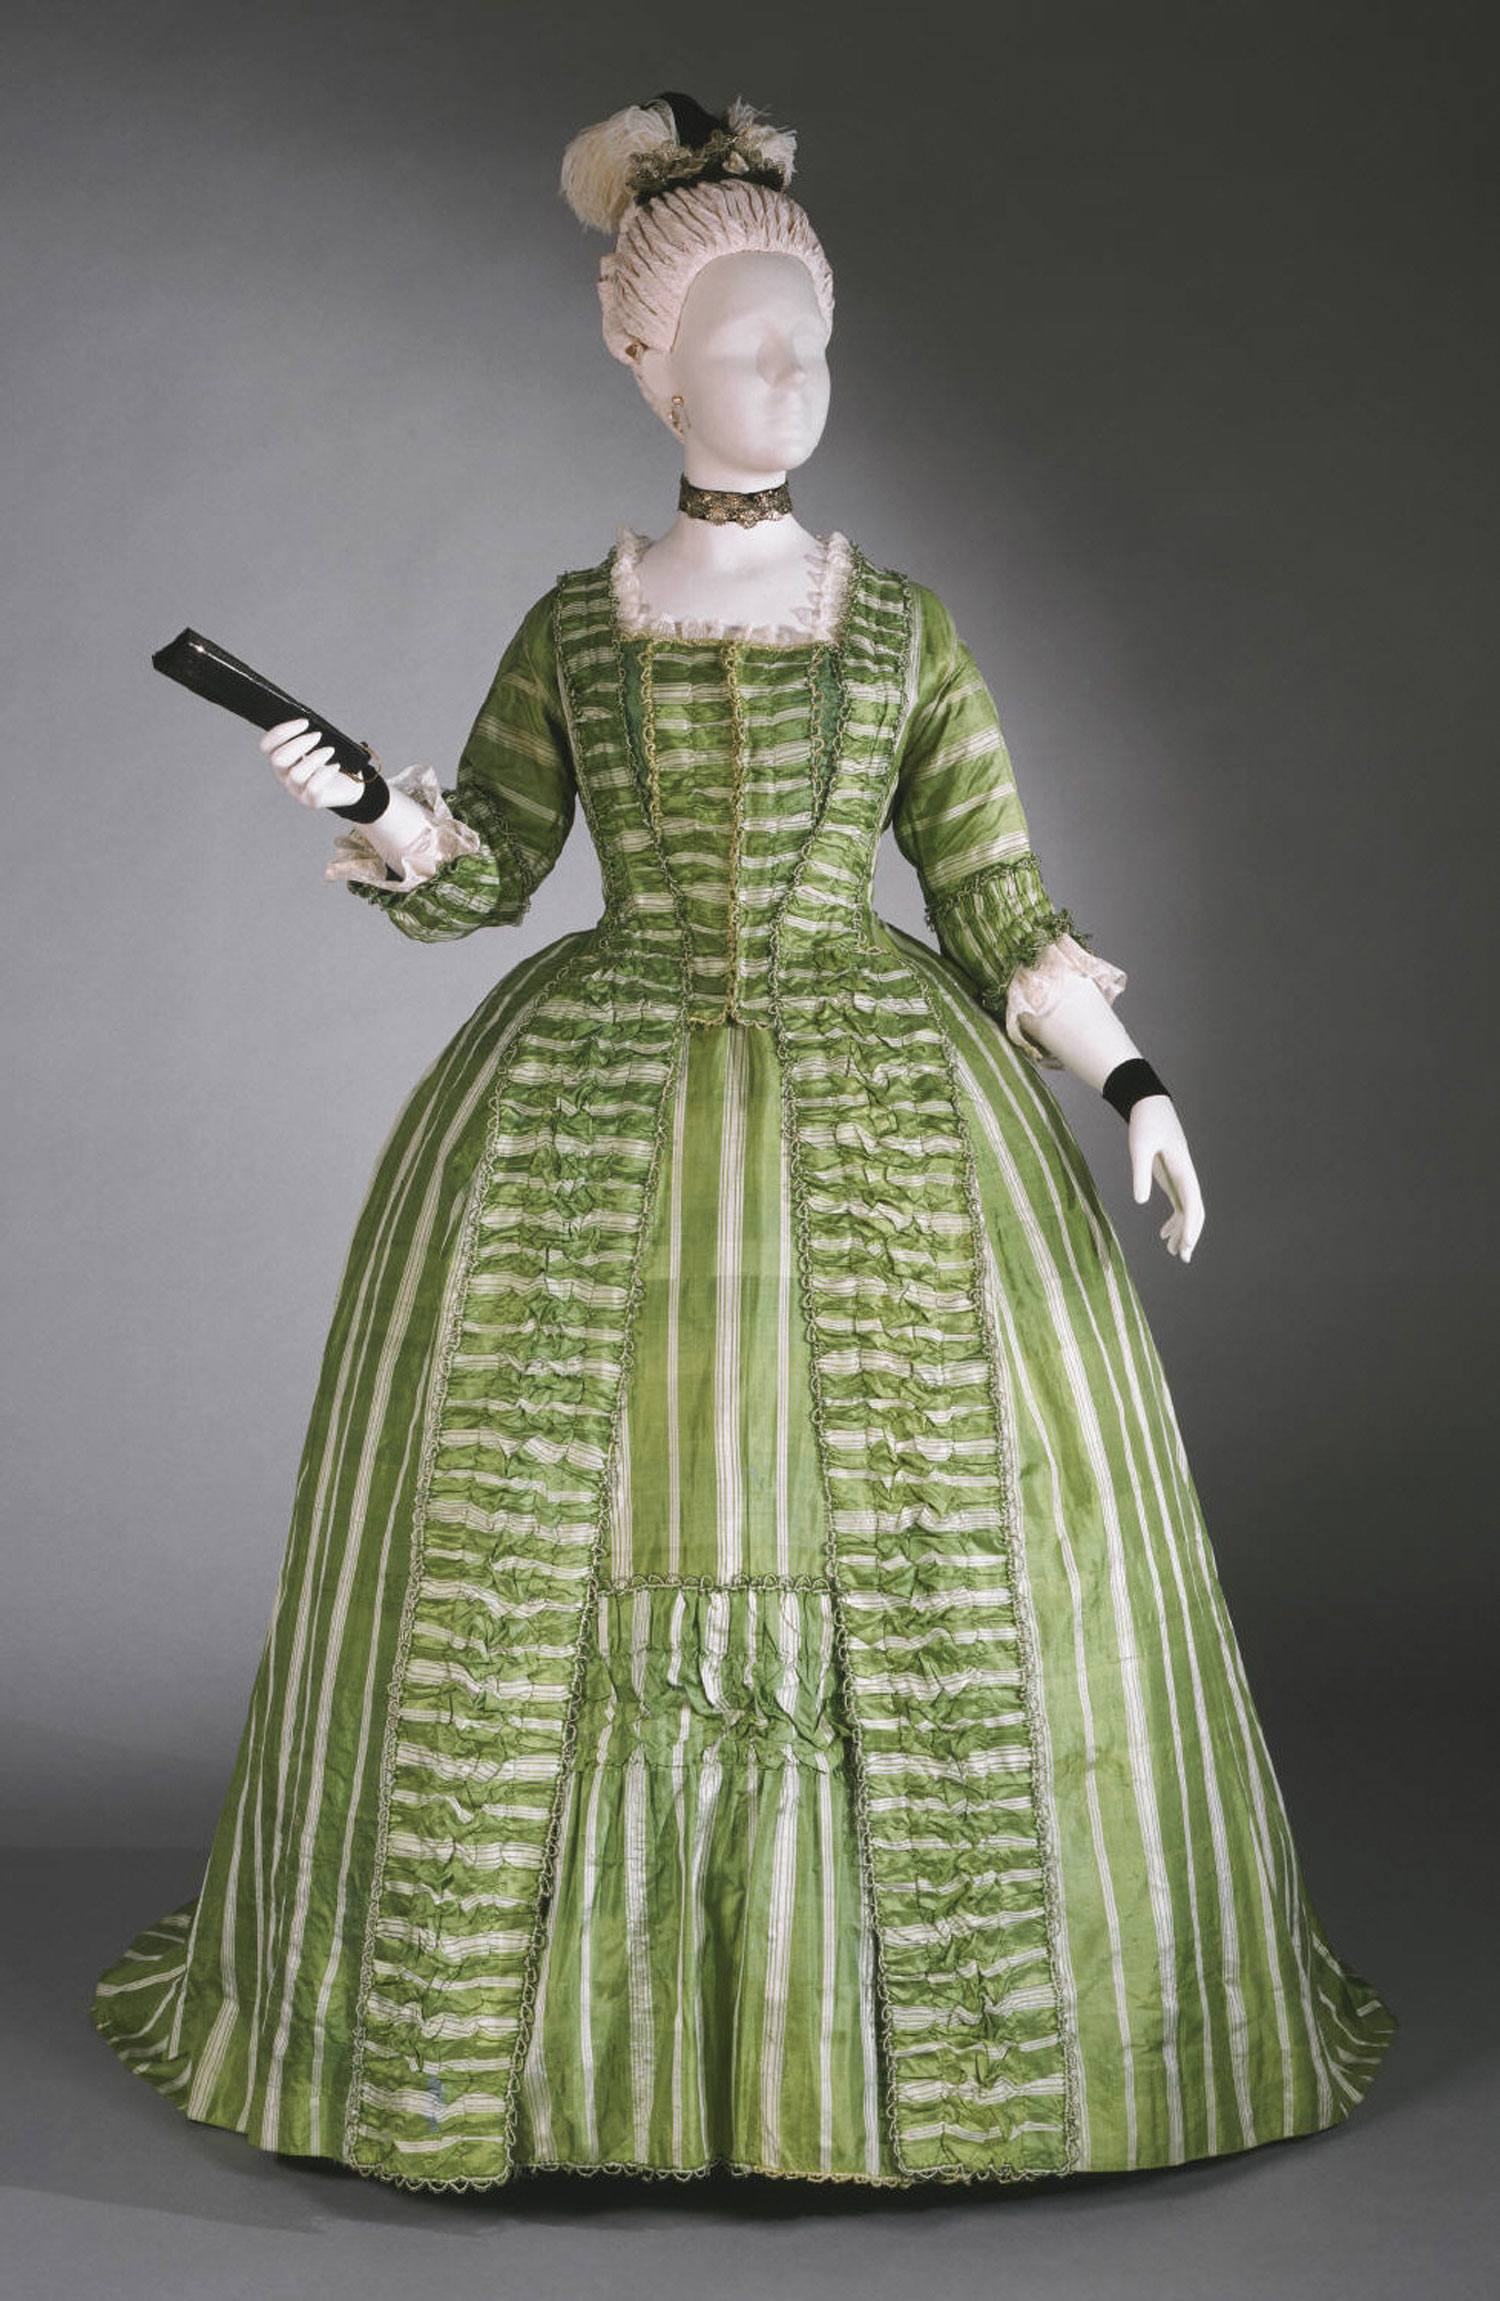 Woman's Dress (Robe à la française) with Attached Stomacher and Matching Petticoat